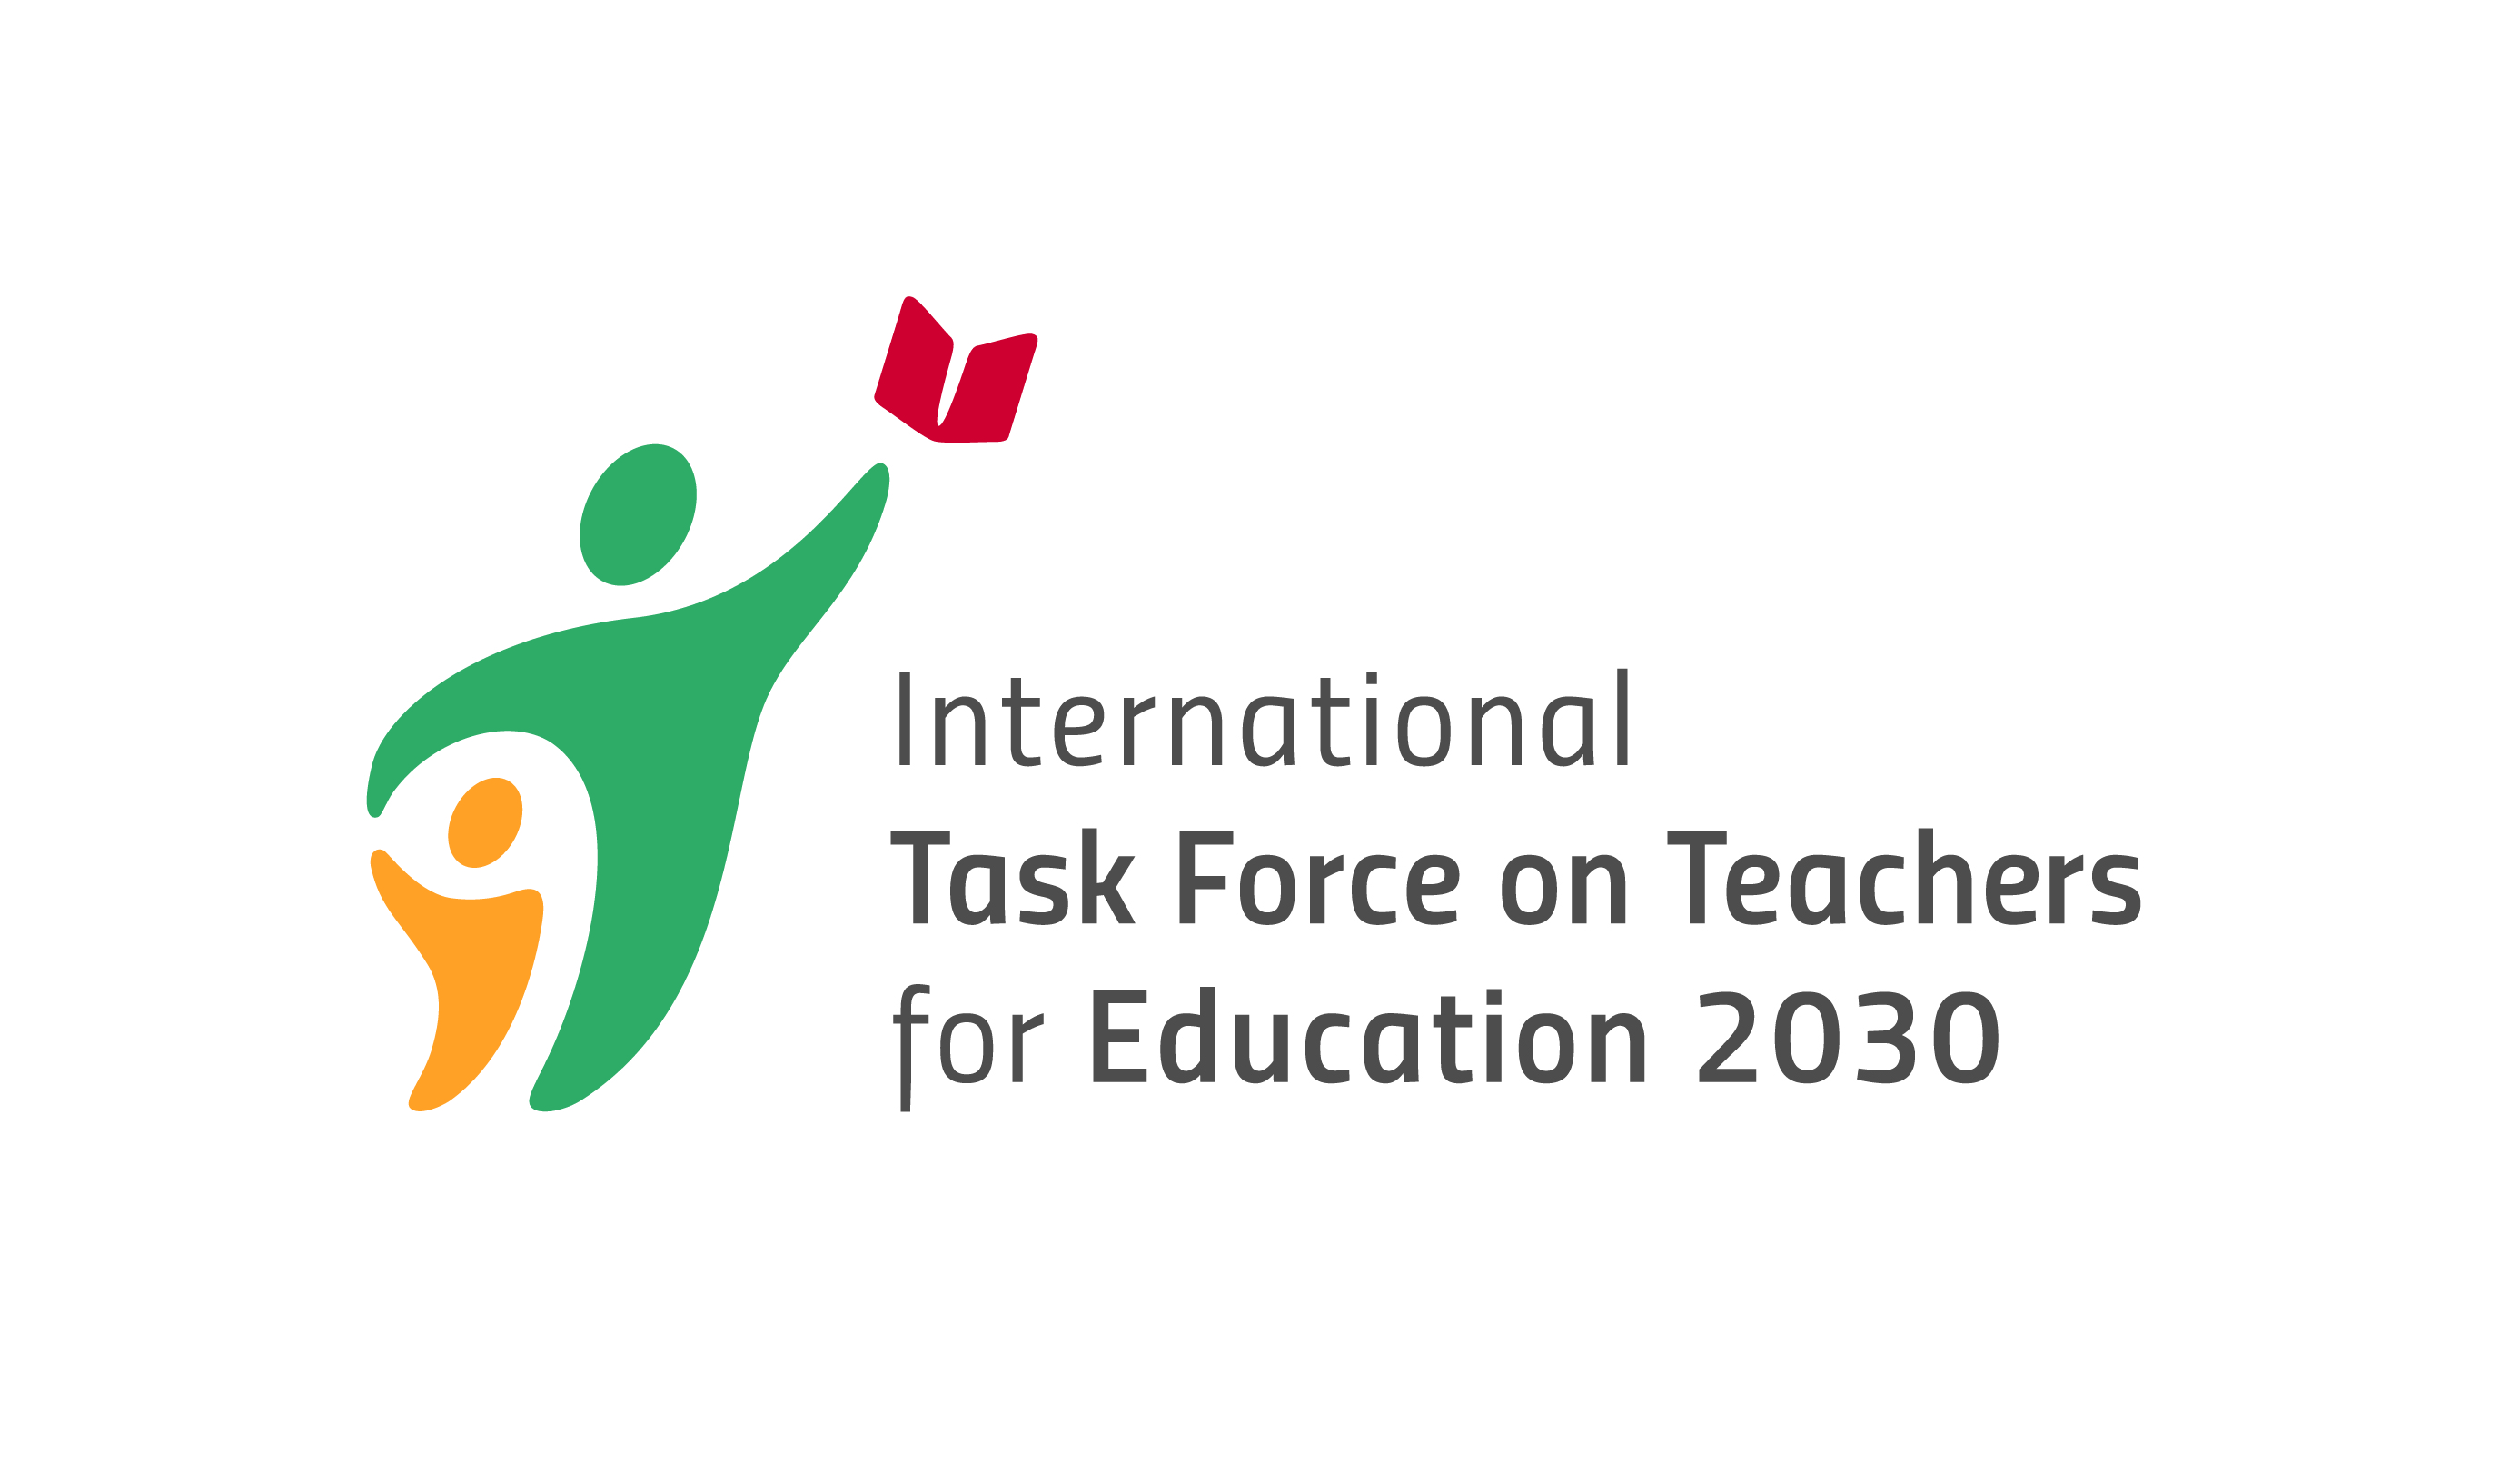 International Task Force on Teachers for Educatoin 2030